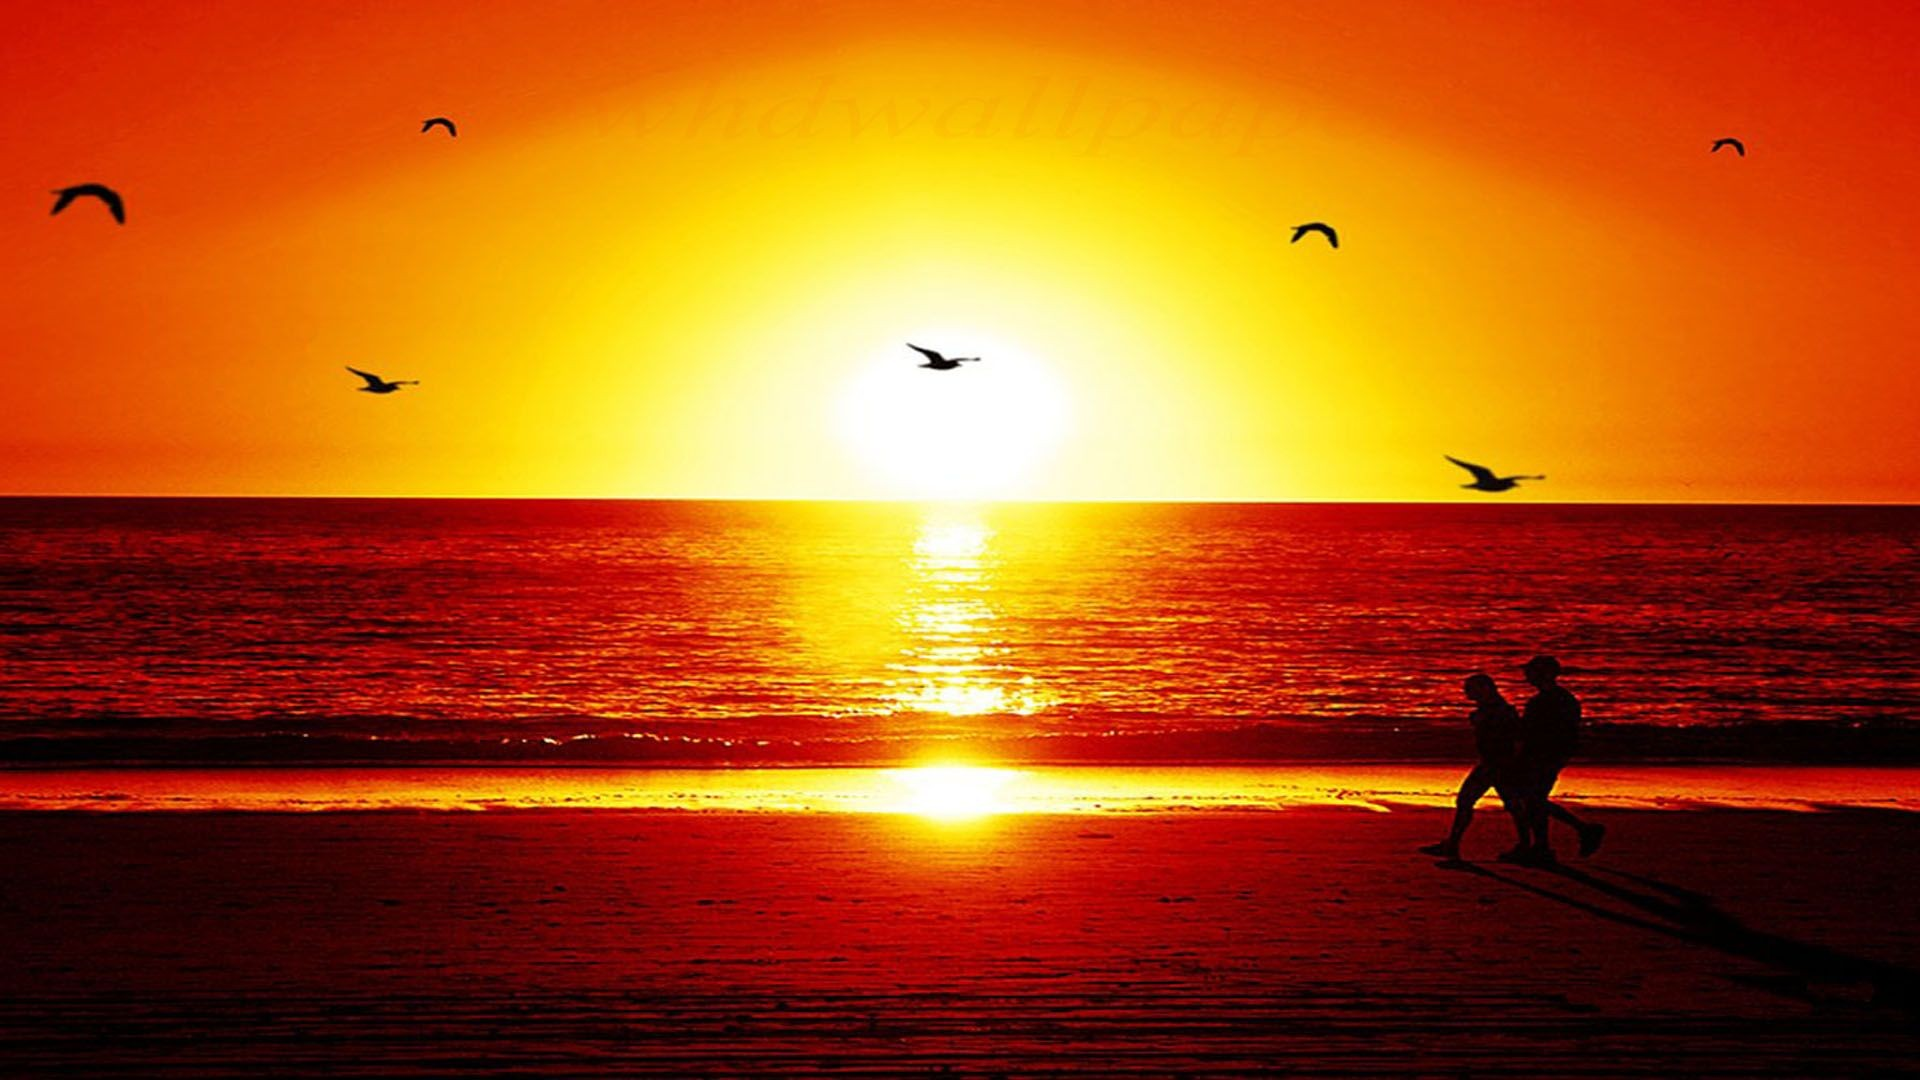 Sunset Wallpapers HD A14